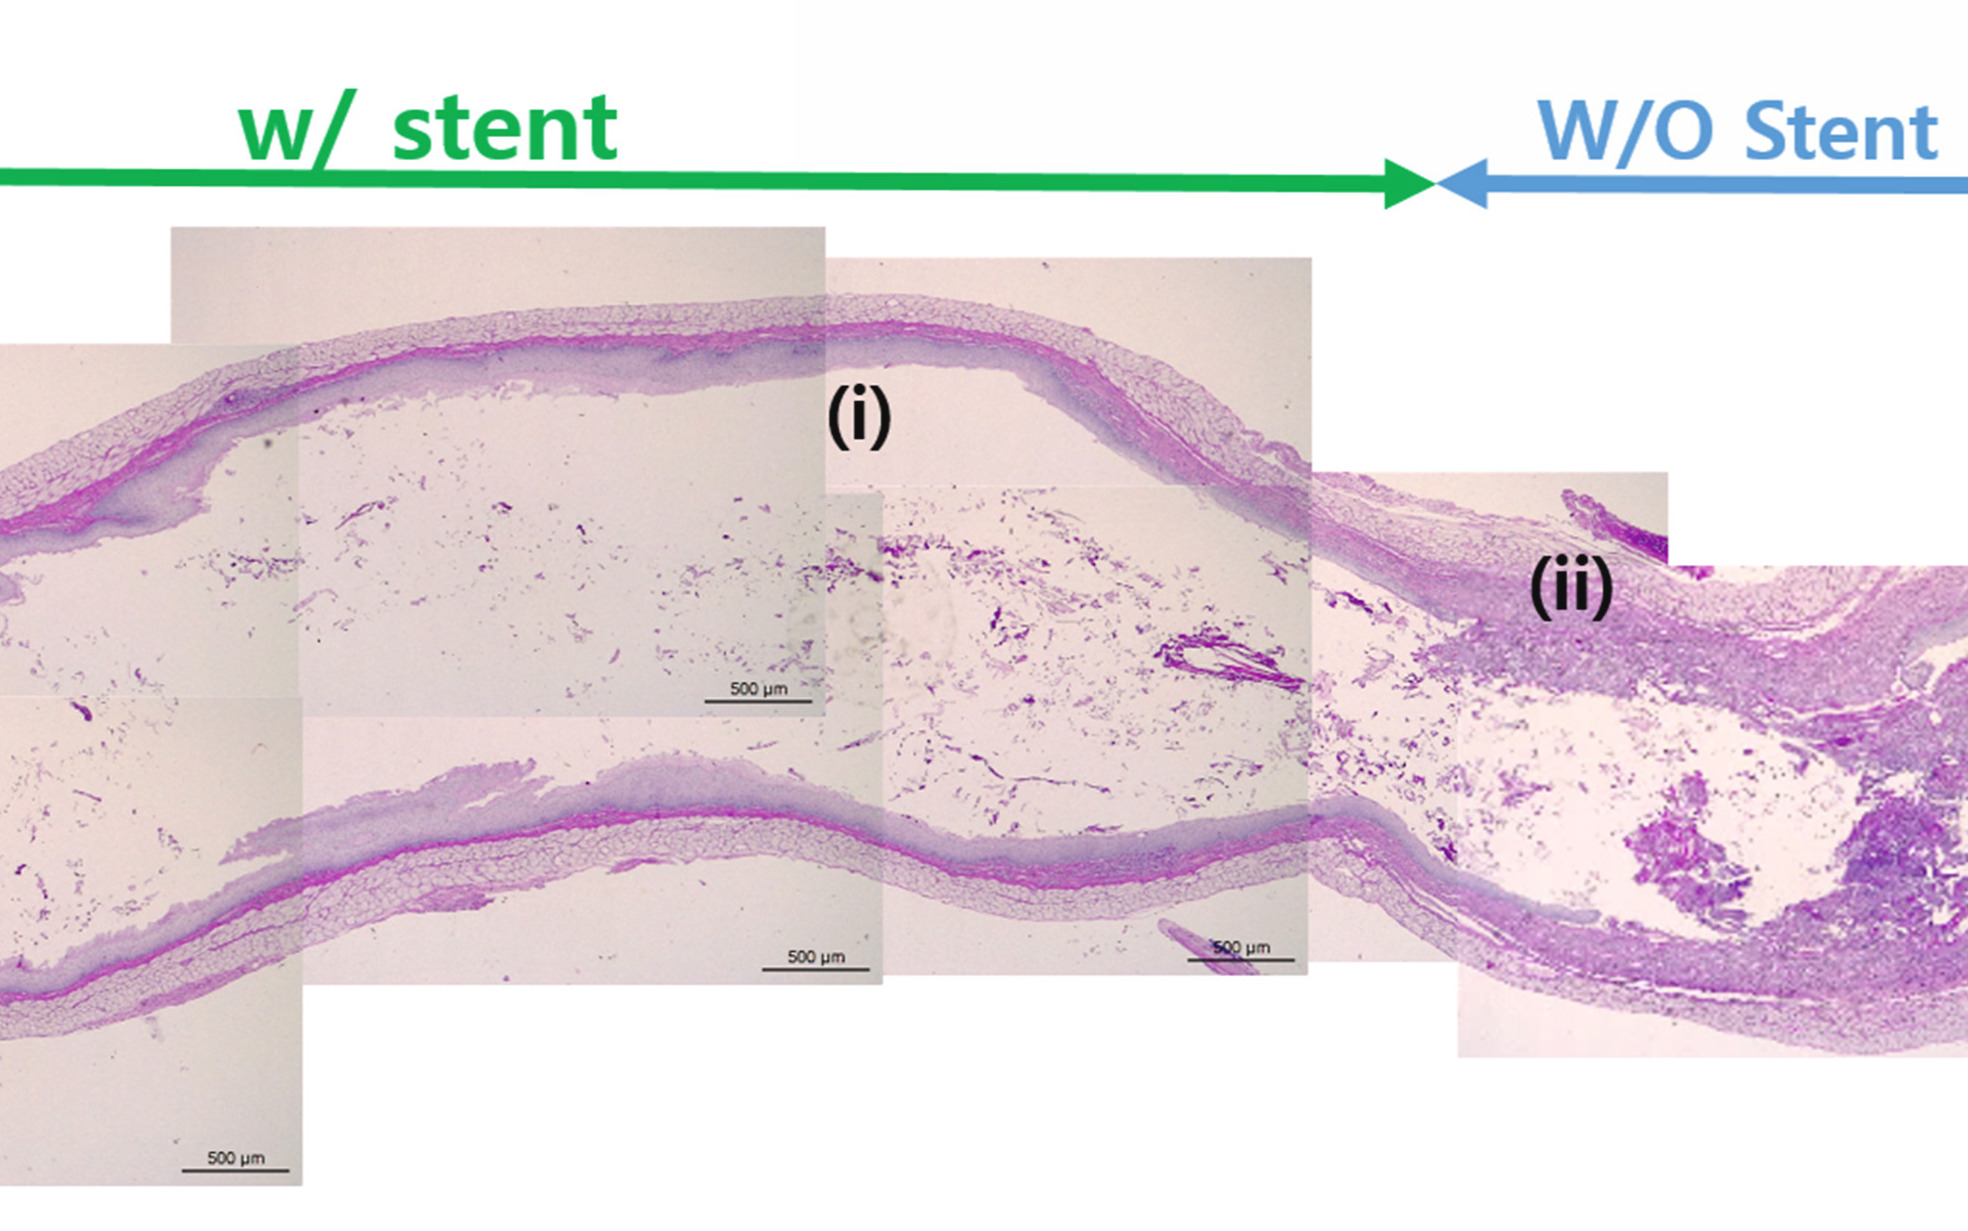 The 3D printed stents demonstrated the ability to encourage cell proliferation during lab rat evaluations. Image via the Biomaterials journal.